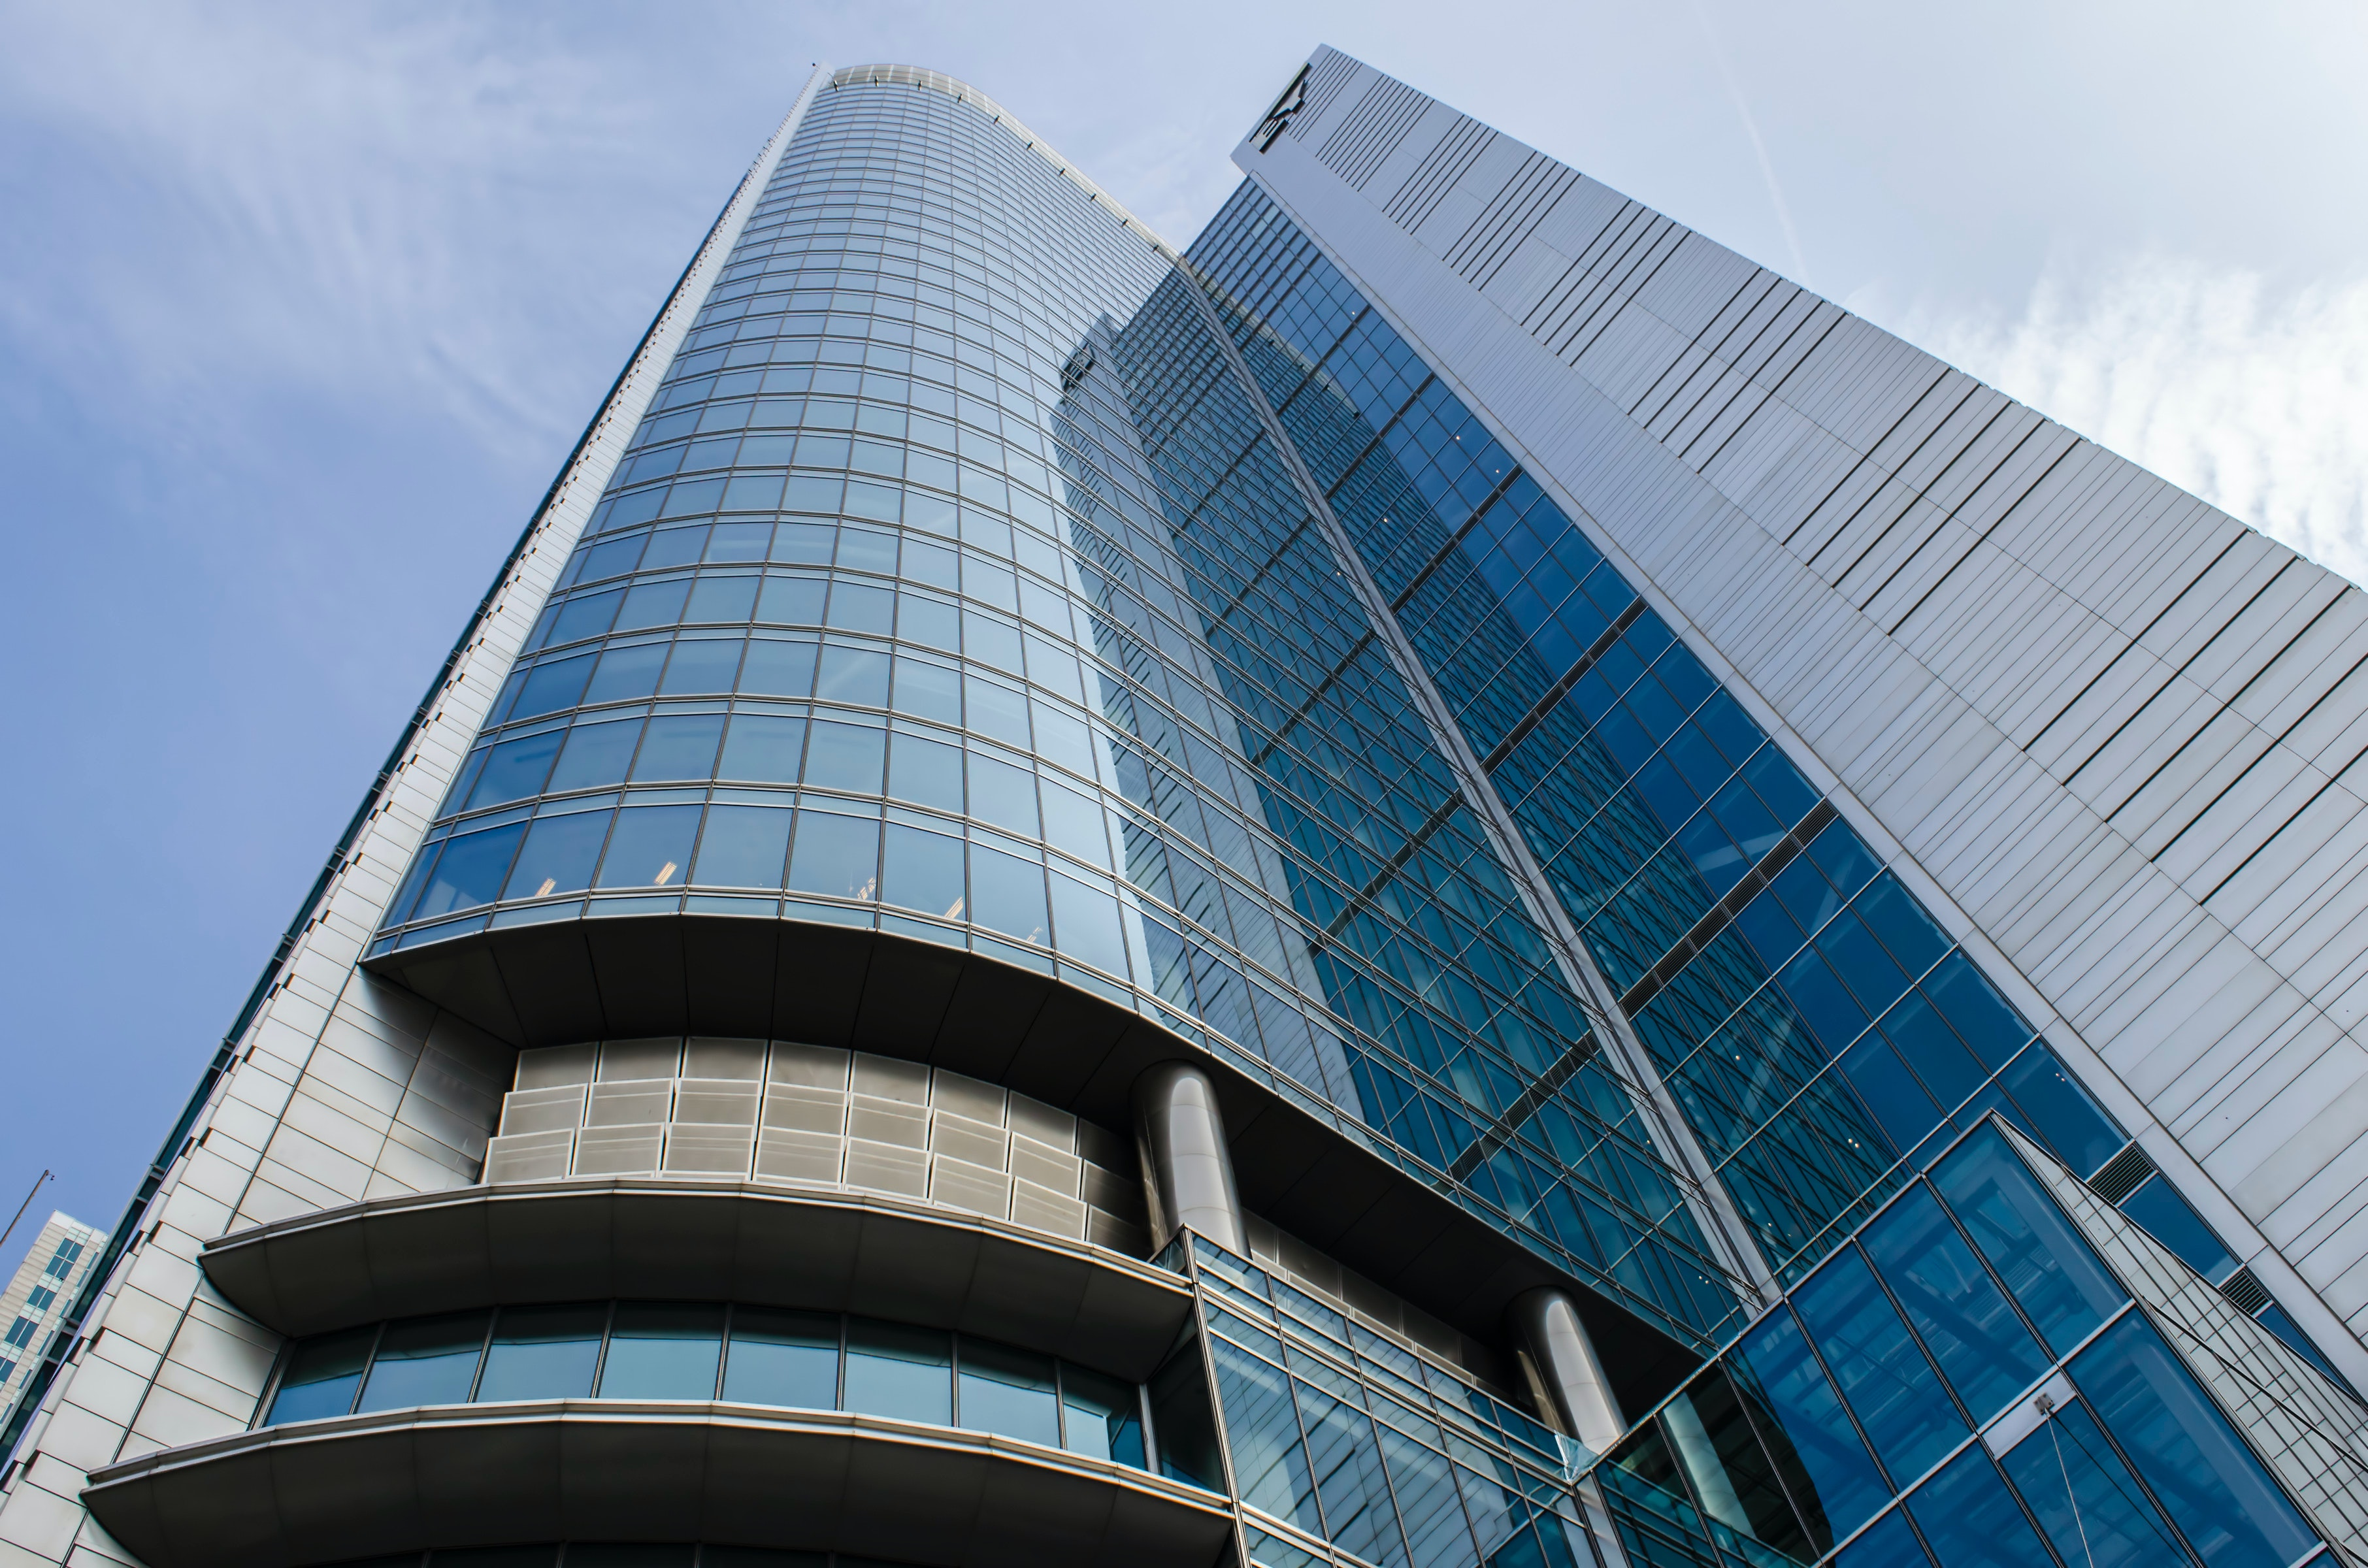 Low Angle Photography Of Building Free Stock Photo: Low Angle Photography Of High-rise Buildings · Free Stock